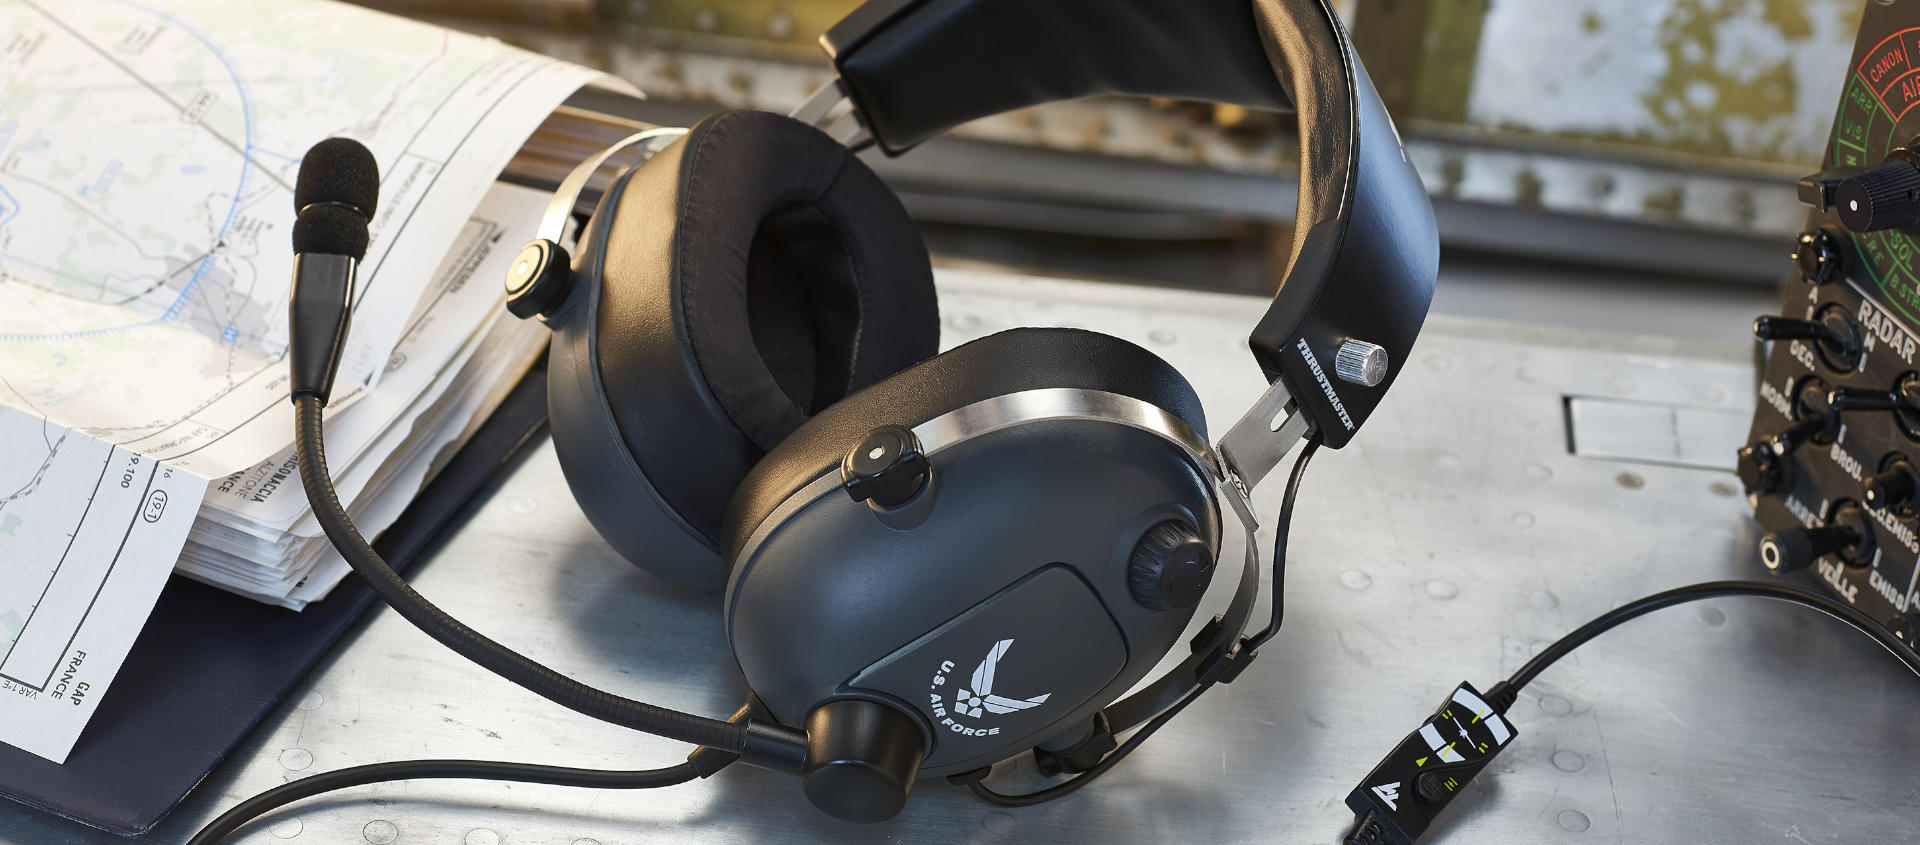 Aerosoft Thrustmaster T.Flight U.S. Air Force Headset